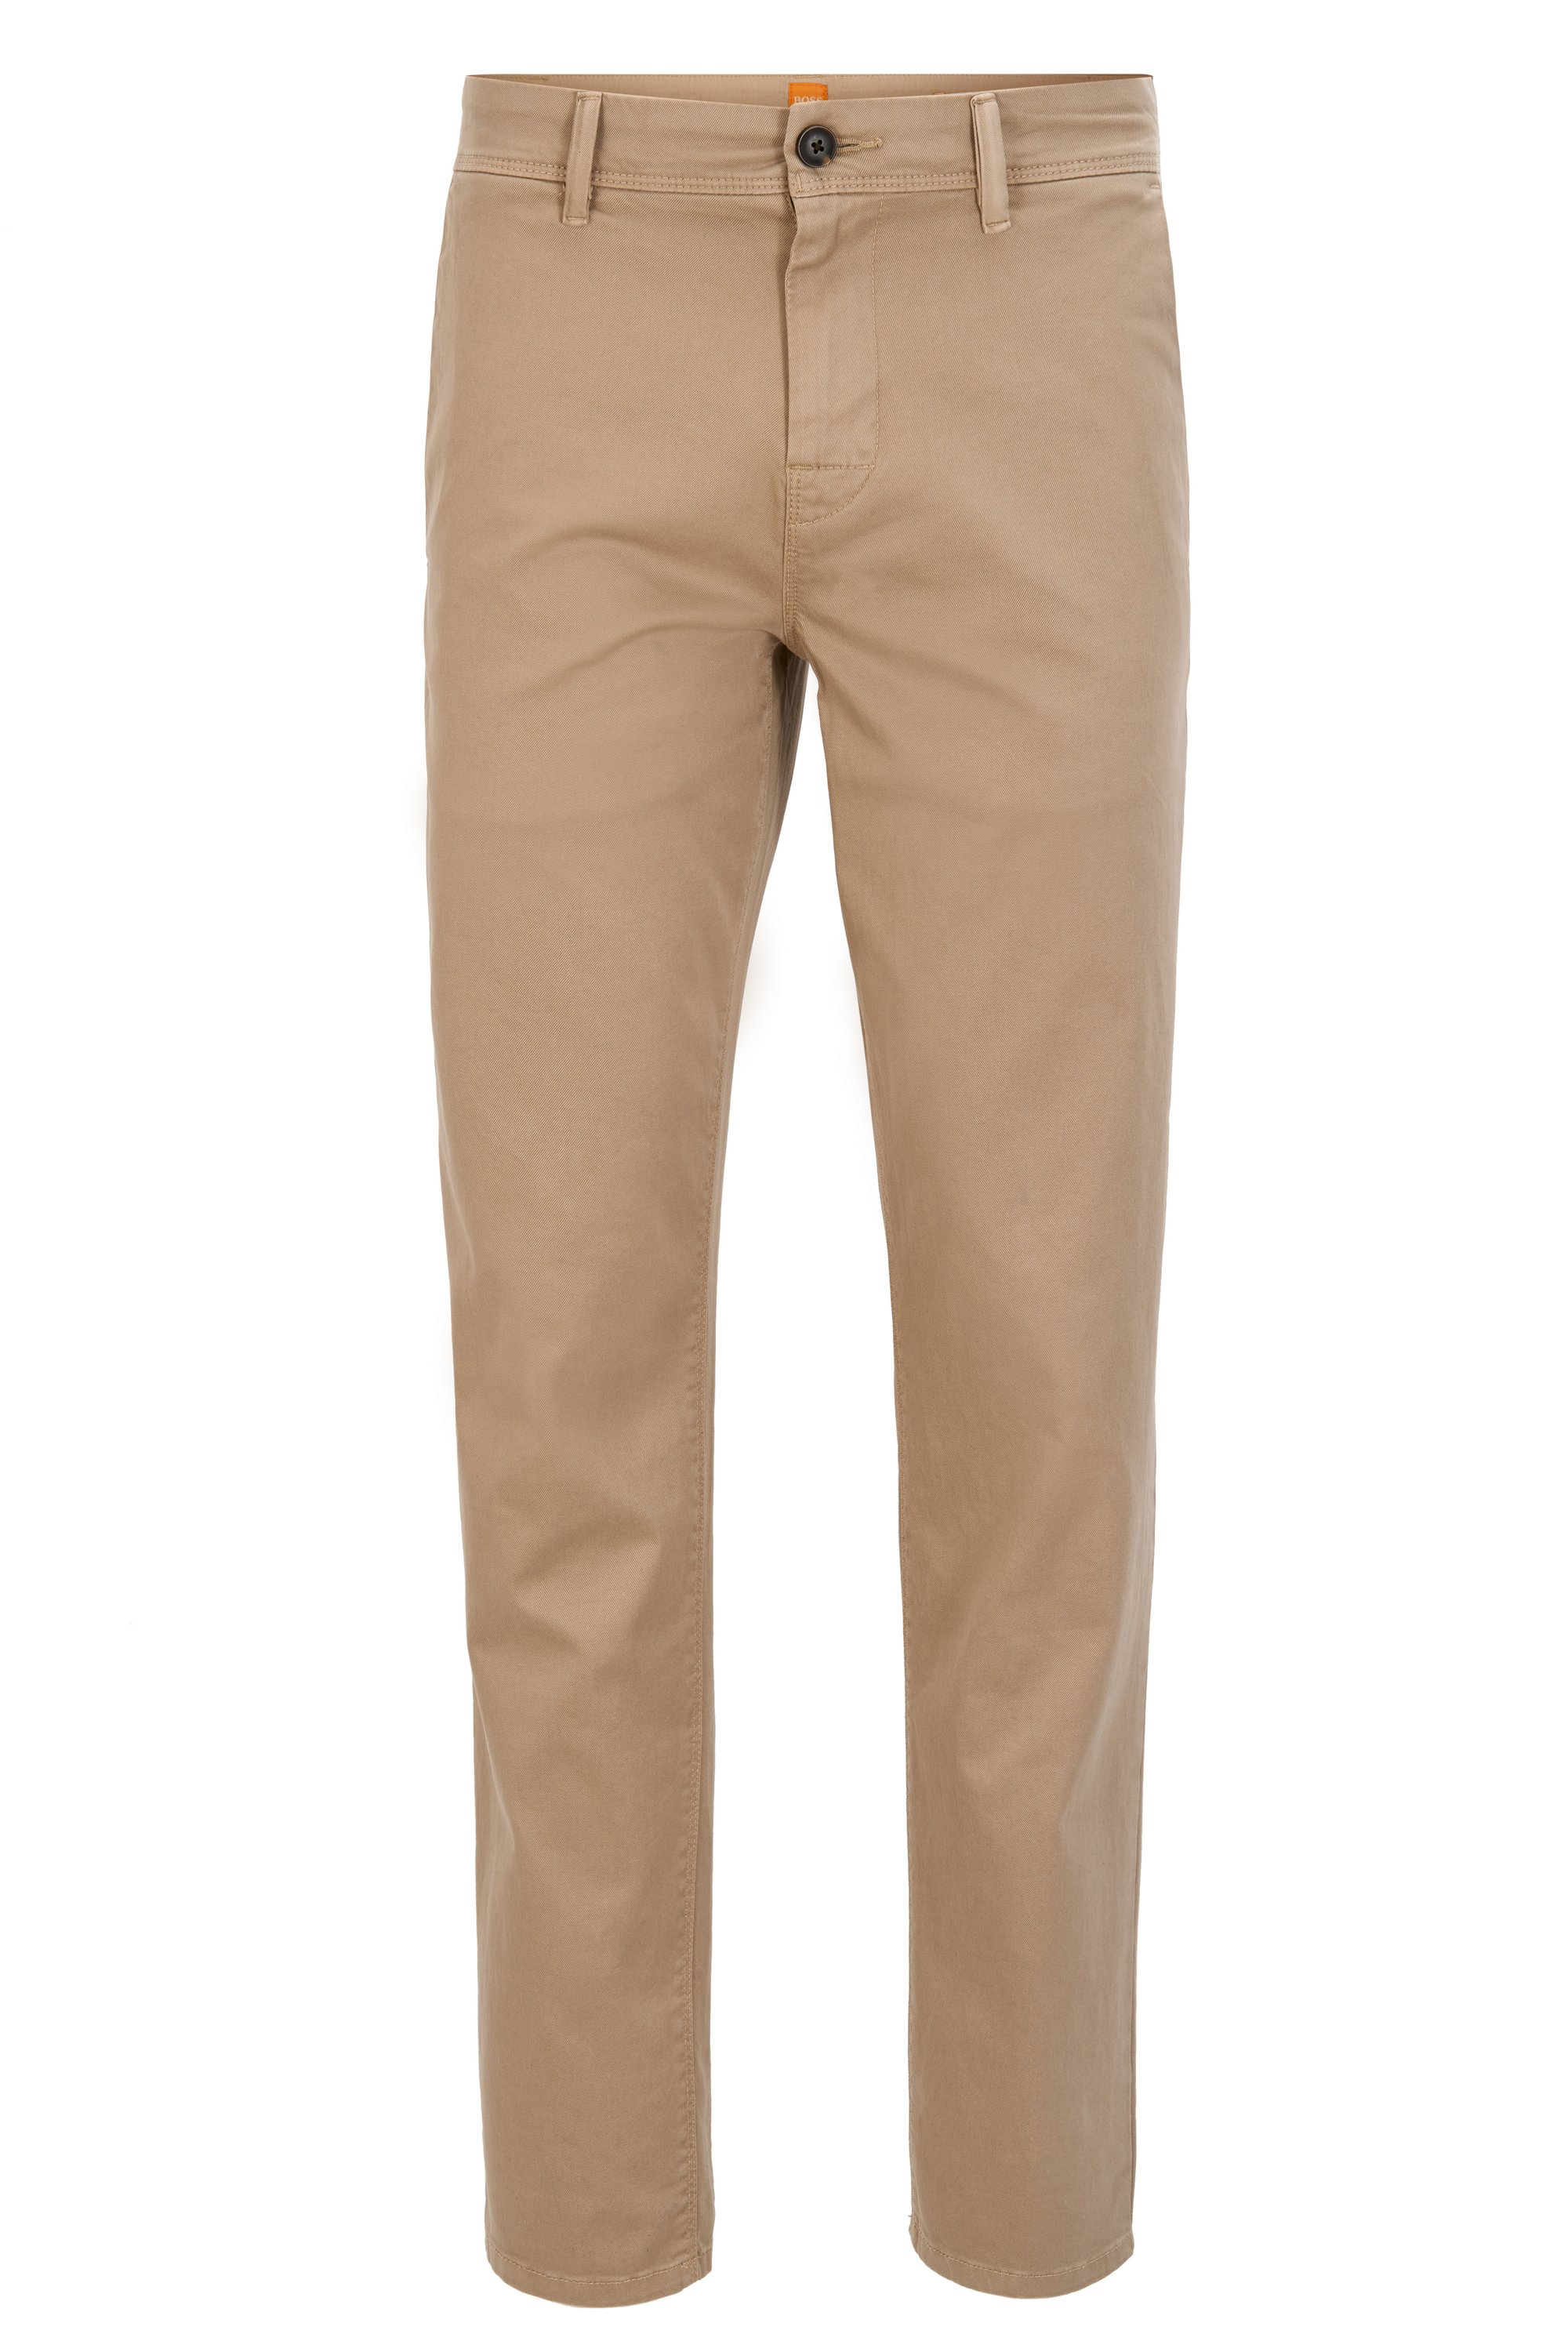 Tapered-Fit Hose aus Stretch-Baumwolle, Beige